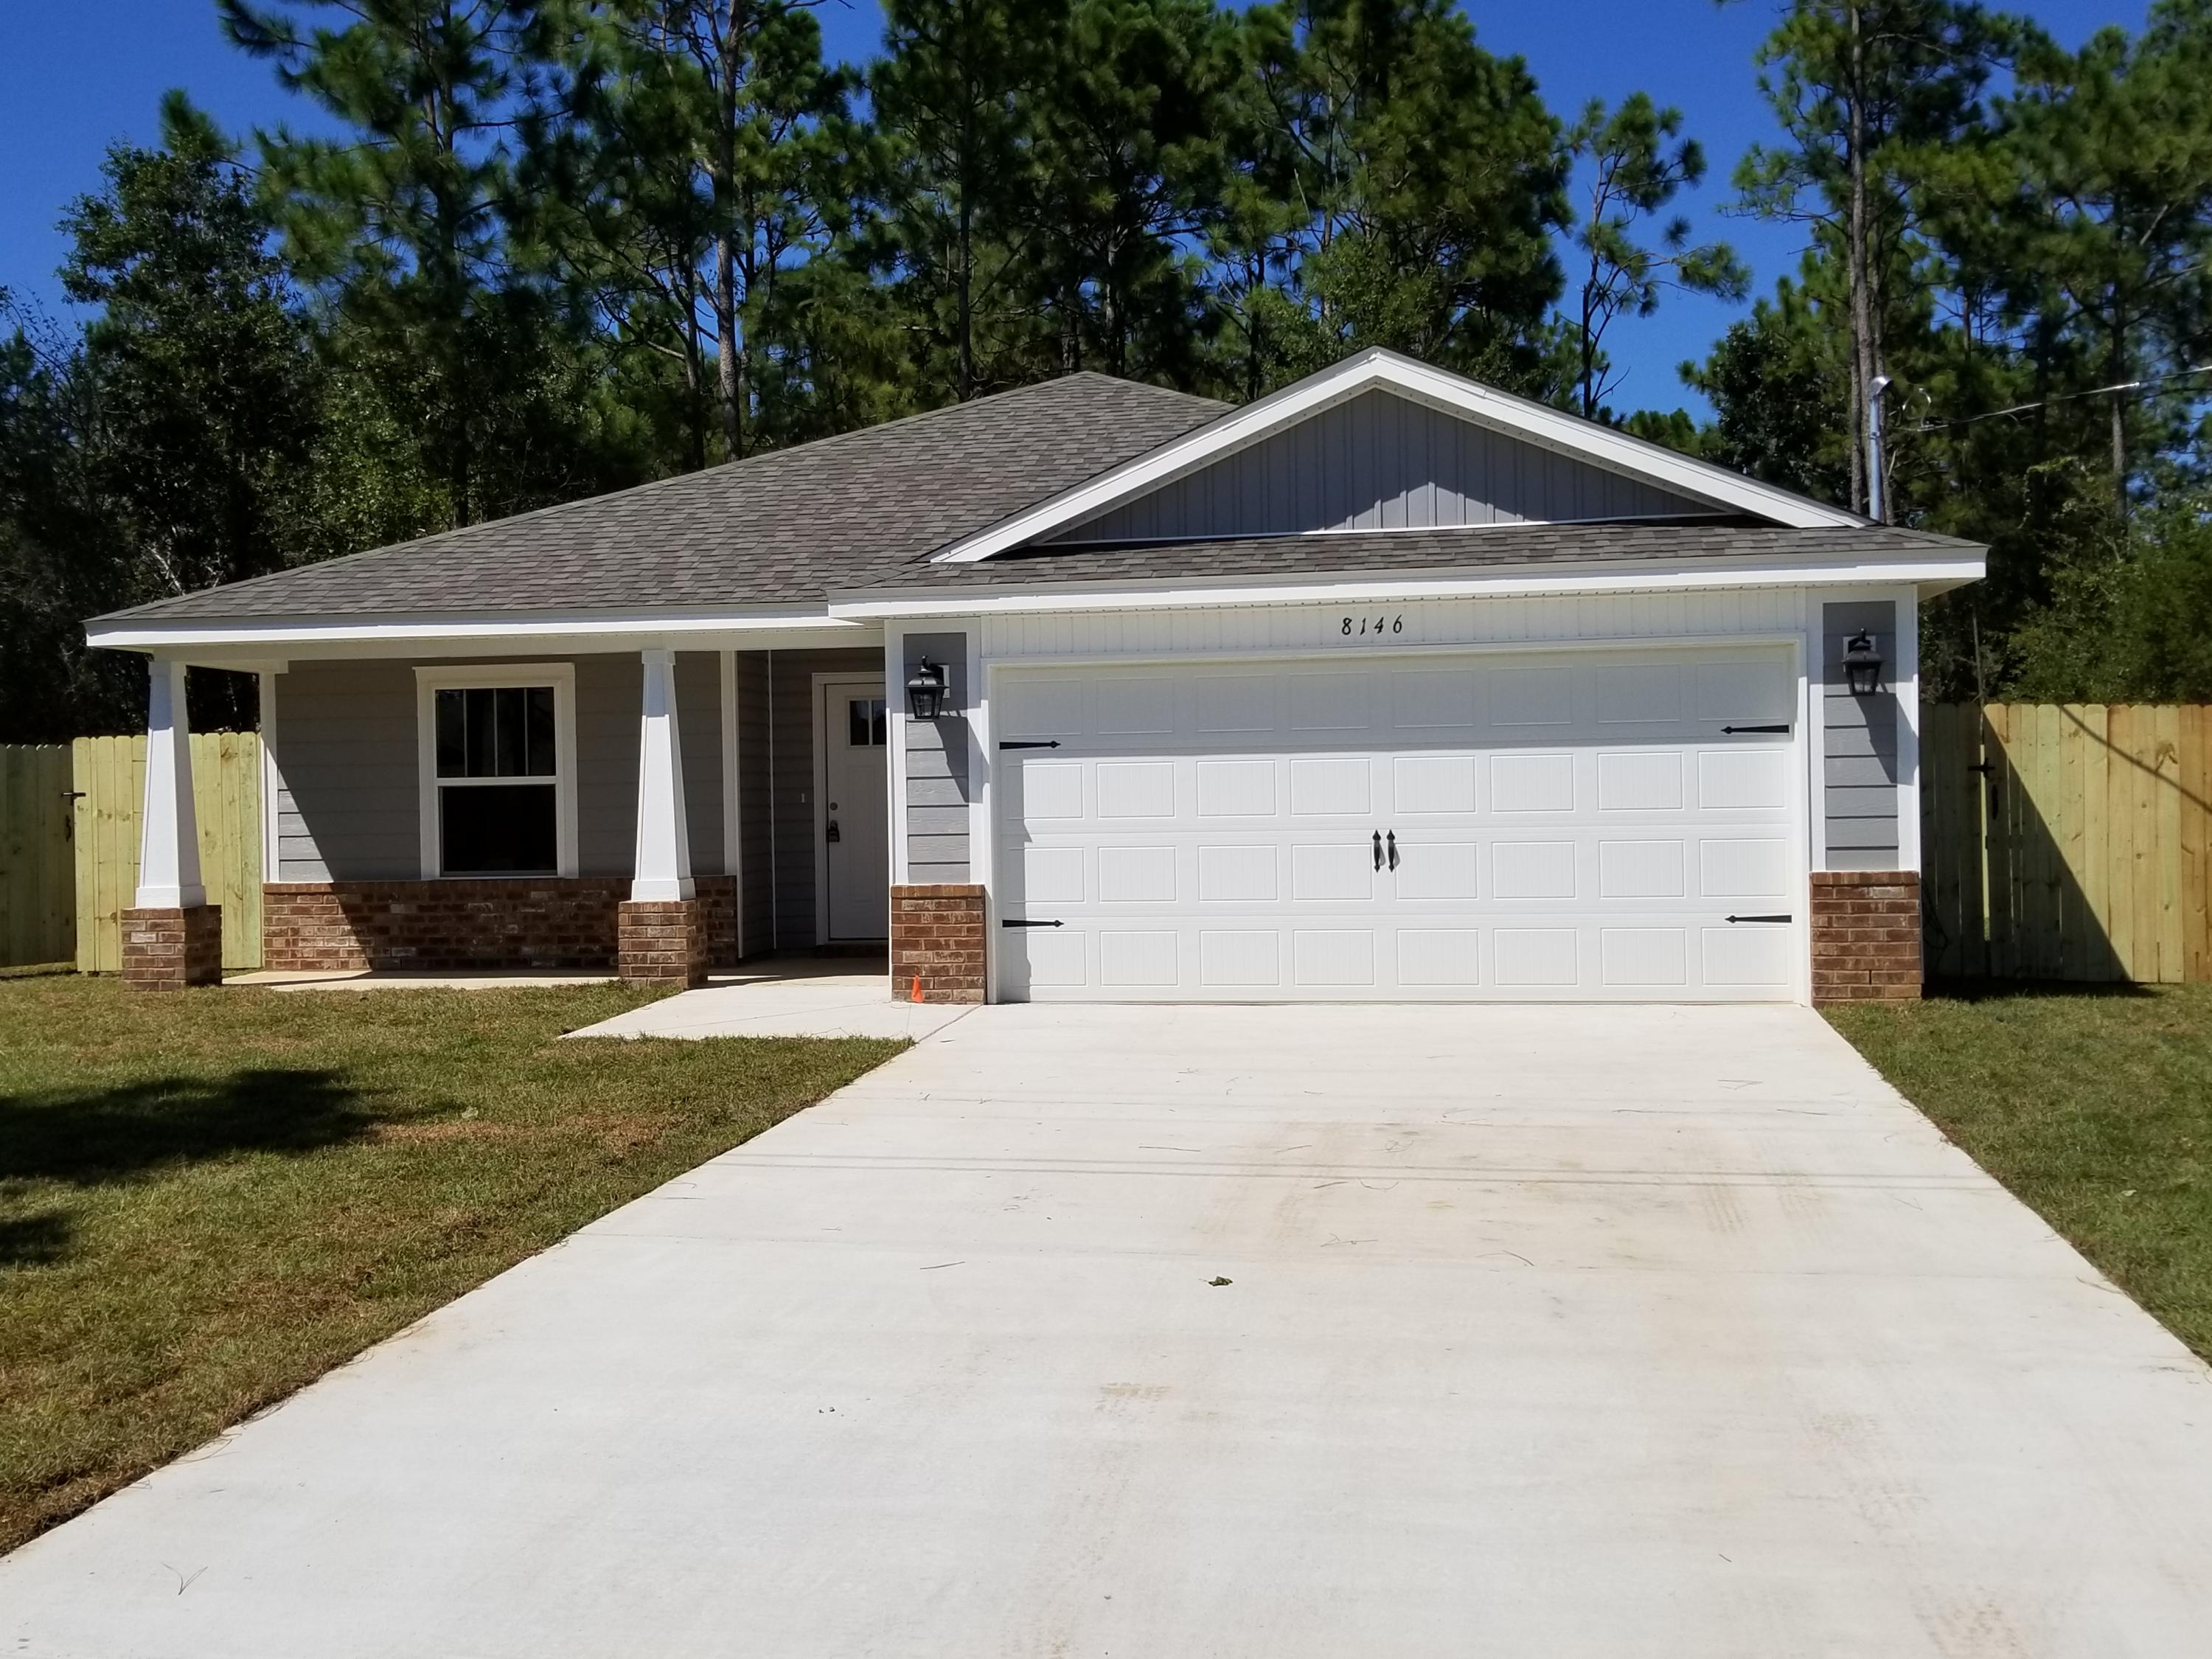 Photo of home for sale at 5445 Galveston, Gulf Breeze FL